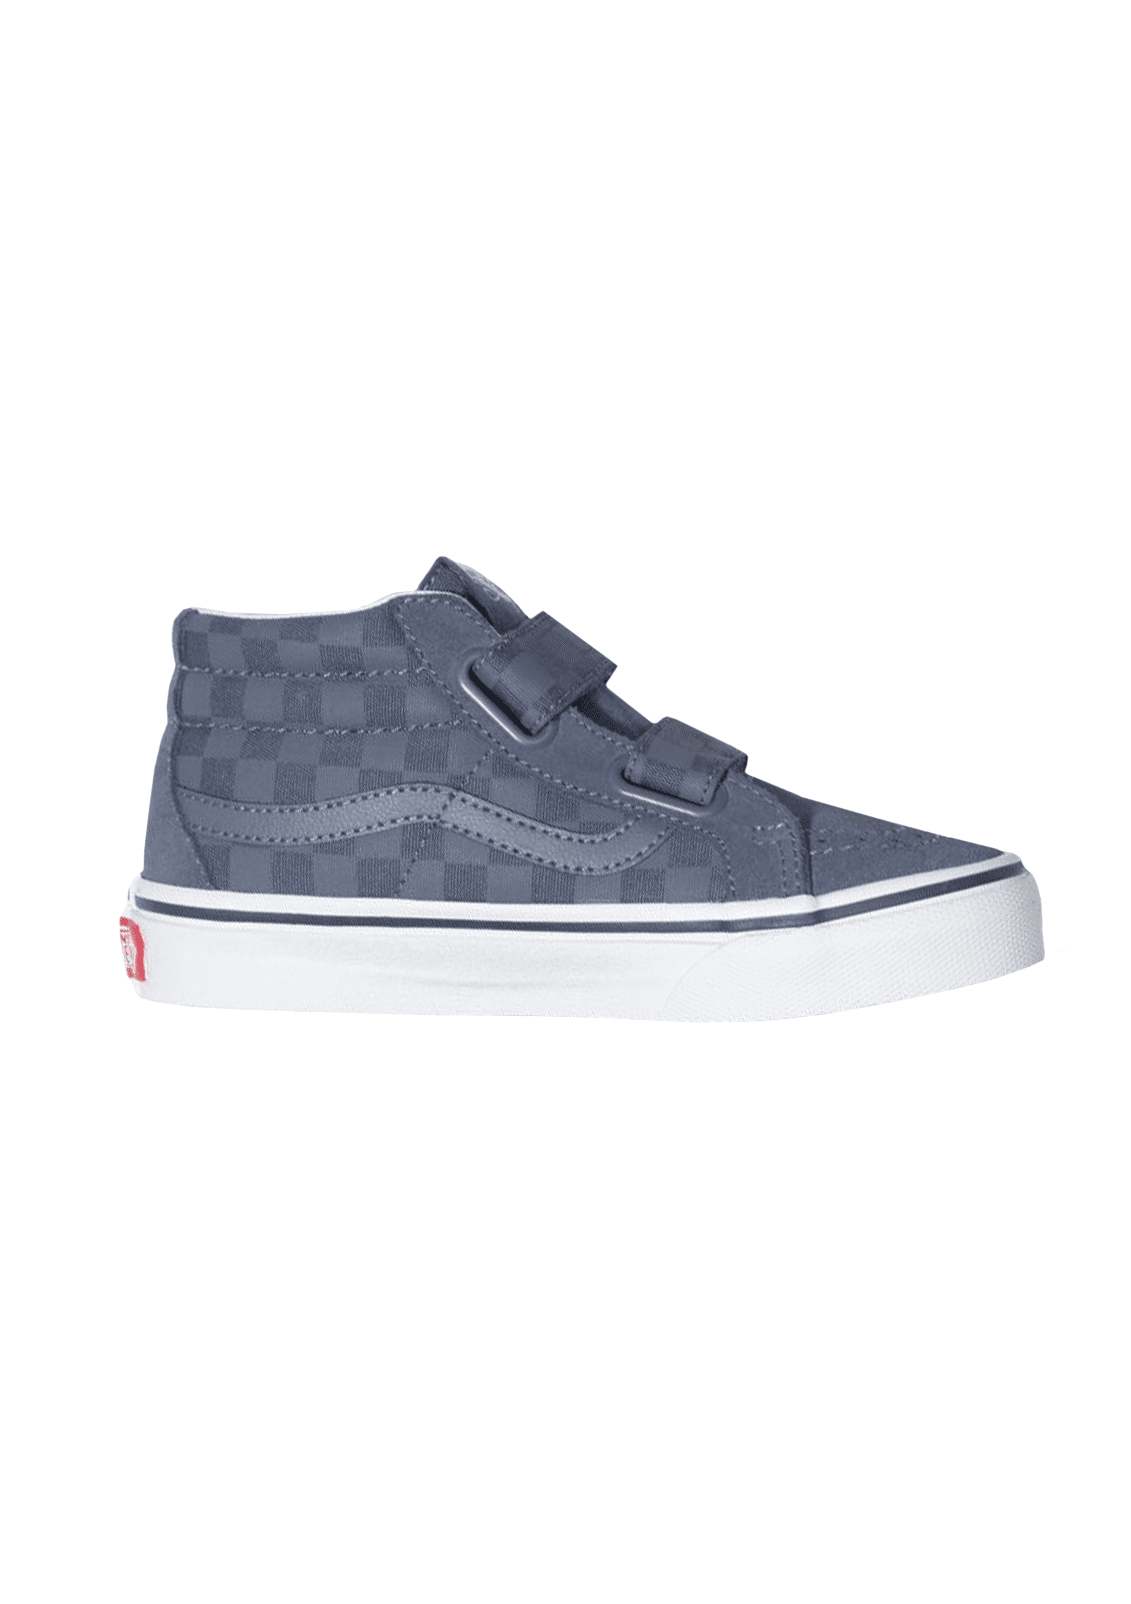 Boy's Checkerboard Sk8-Mid Reissue Shoe